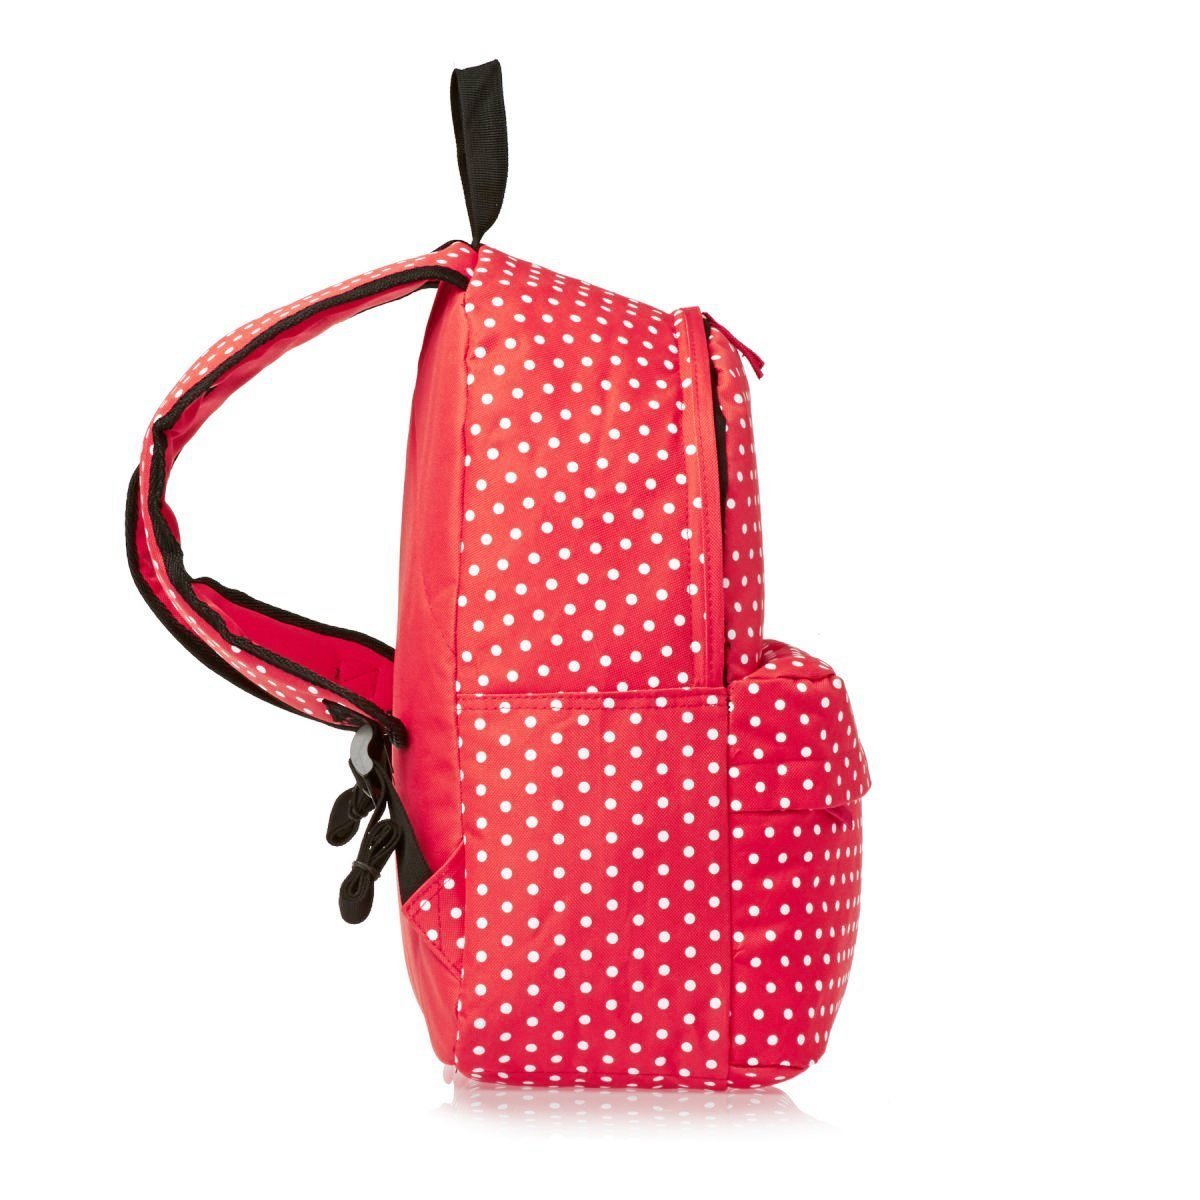 SWANE Paul Frank Style Stripe Canvas Polka Dot Backpack for Students   Kids 5cca3f3b0a63d